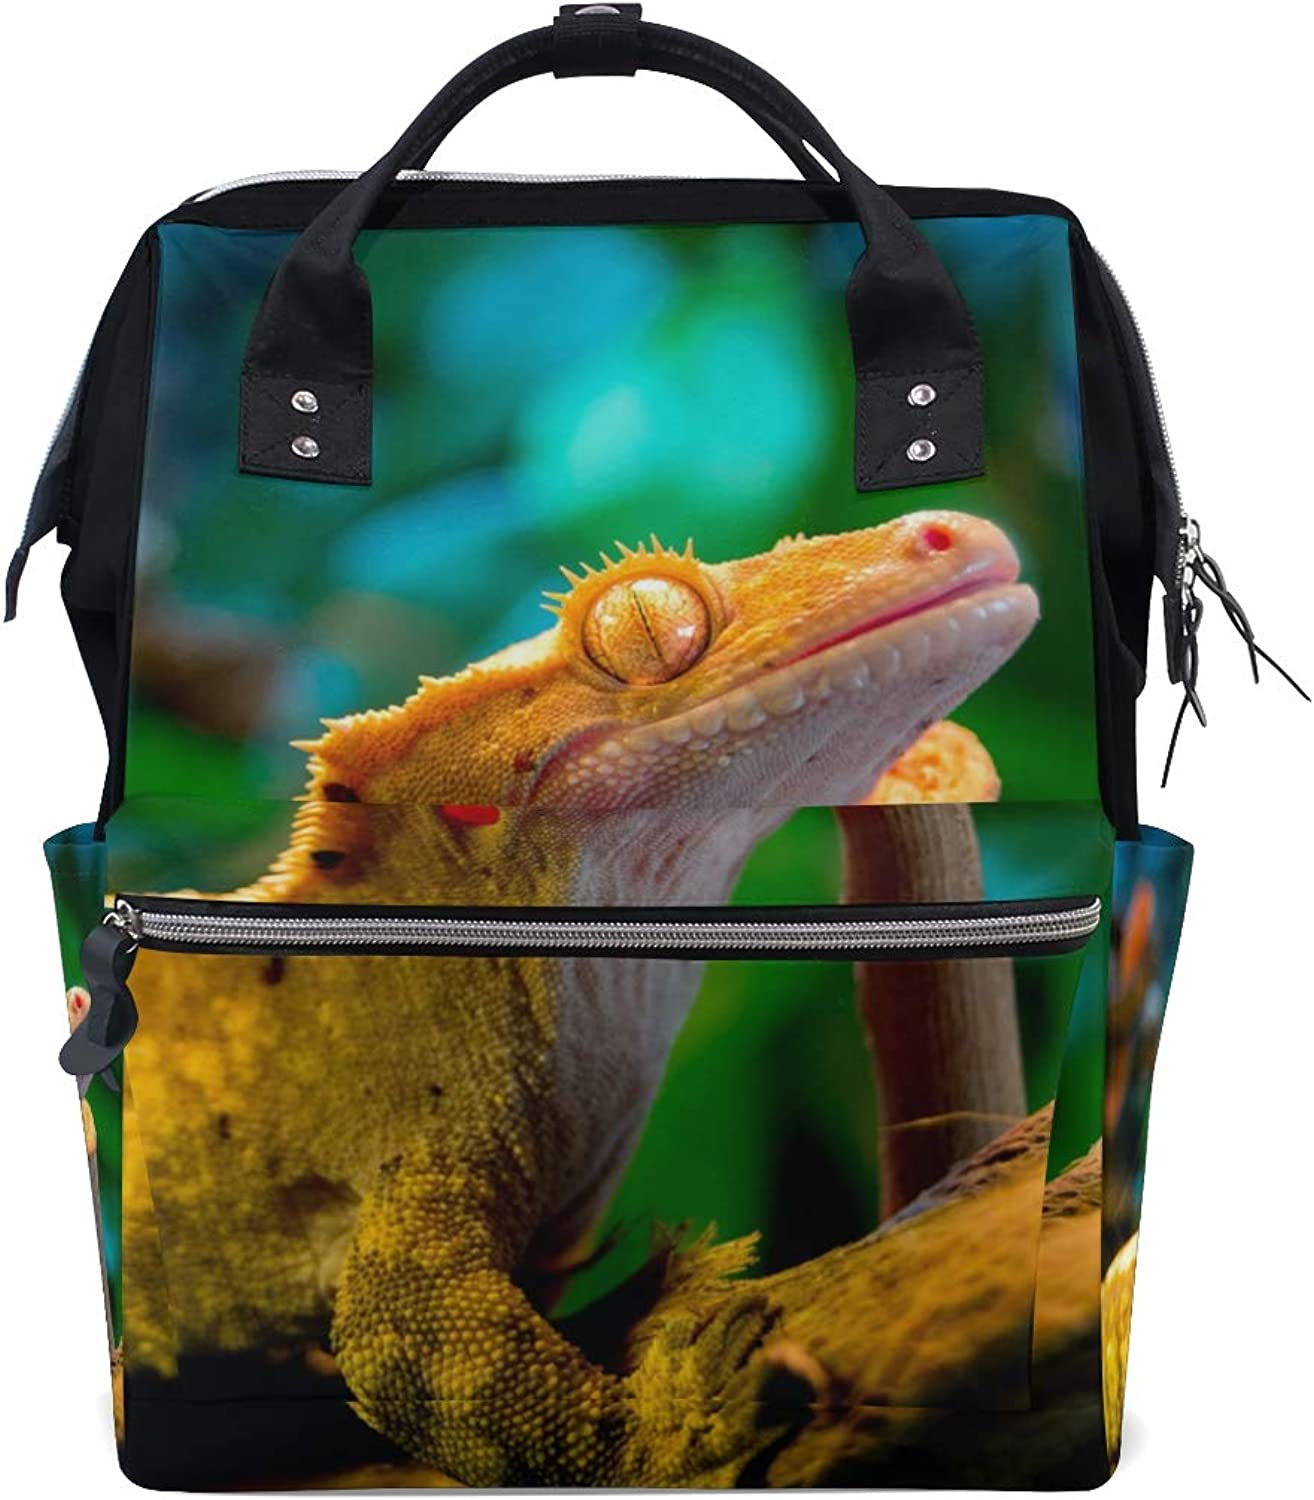 MONTOJ Awesome Reptile Gecko Lizard Canvas Travel Bag Campus Backpack